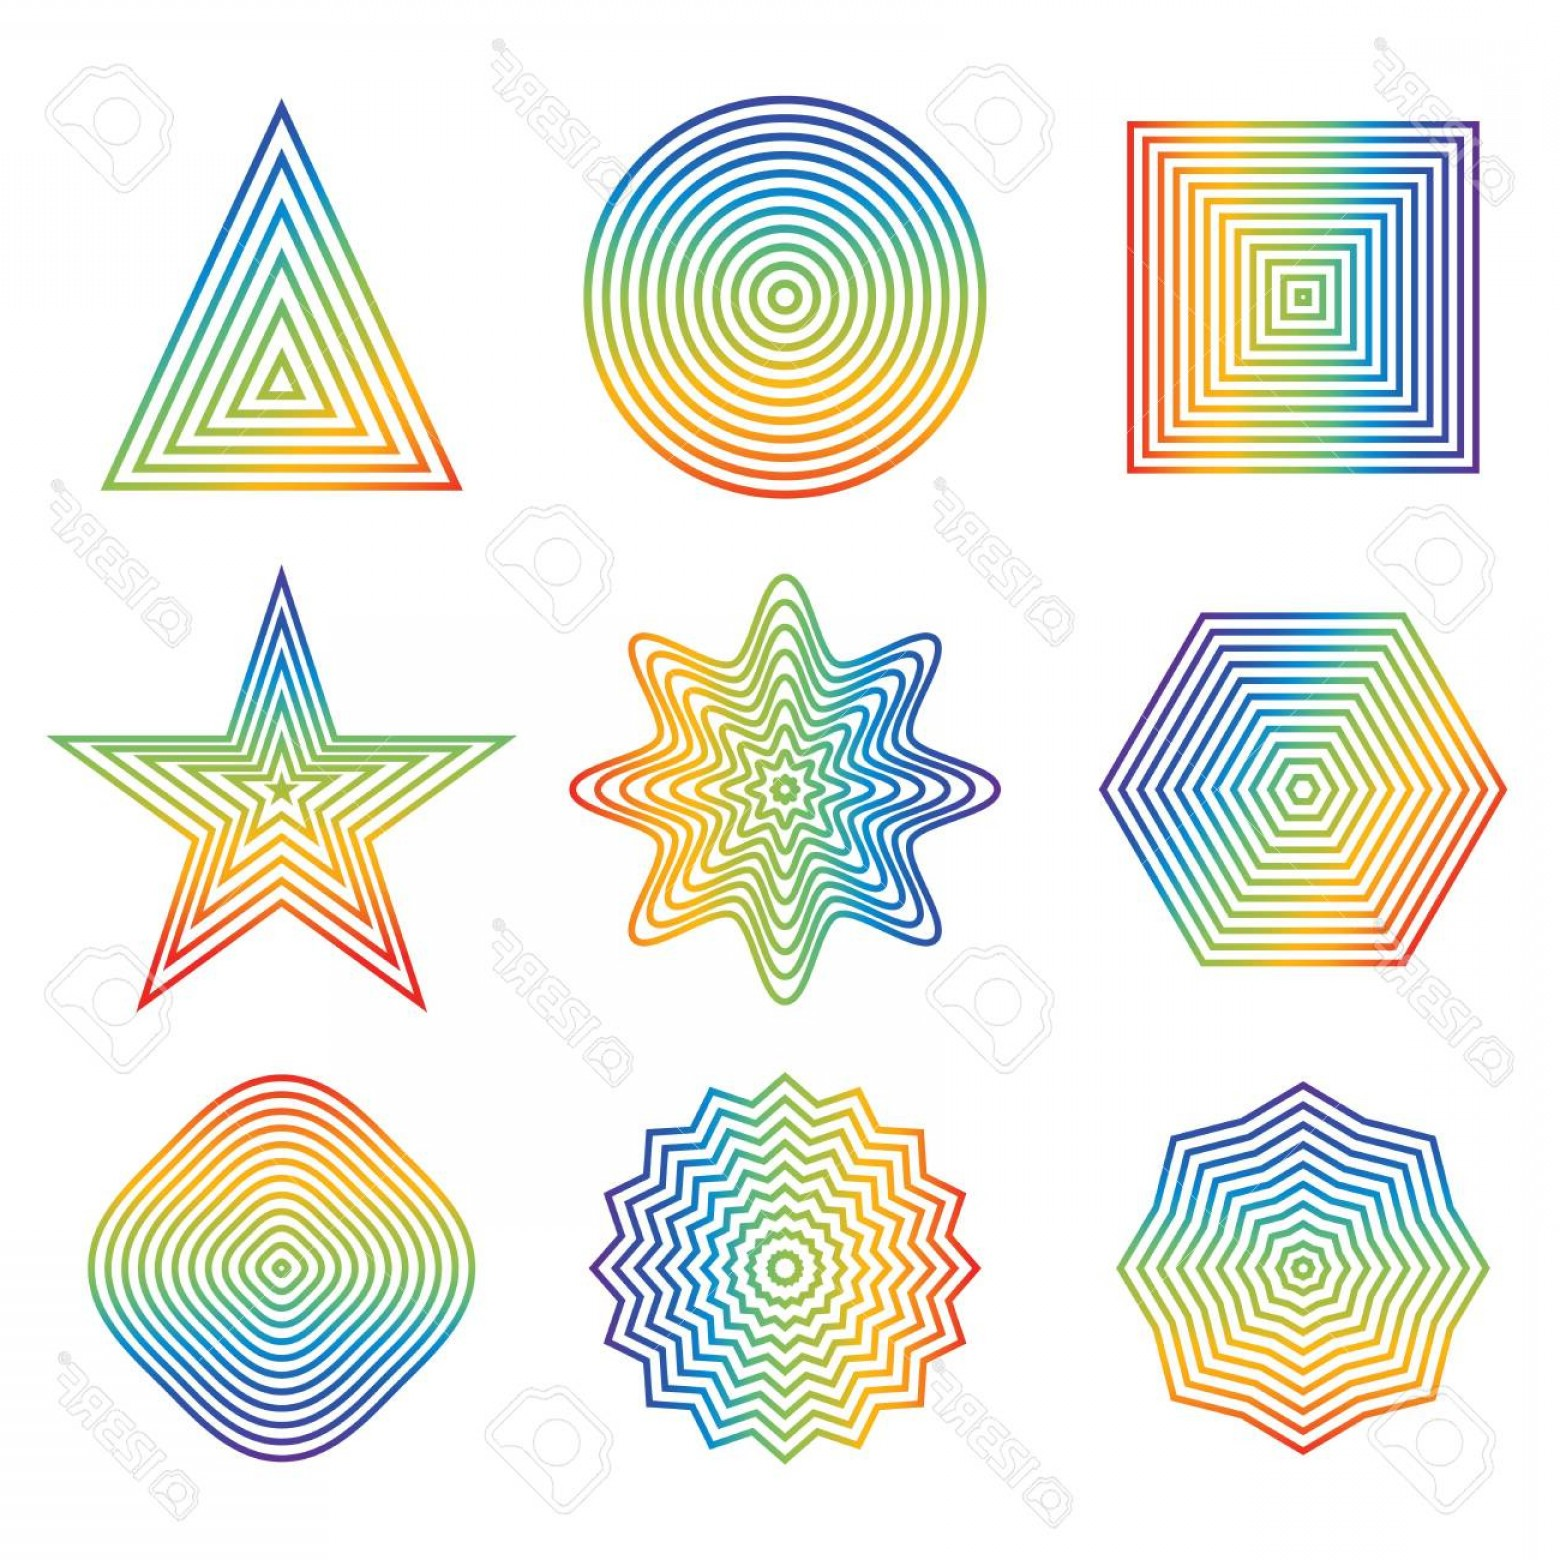 Rainbow Free Line Vector: Photostock Vector Vector Illustration Of Rainbow Line In Geometric Shape Element Isolated On White Background